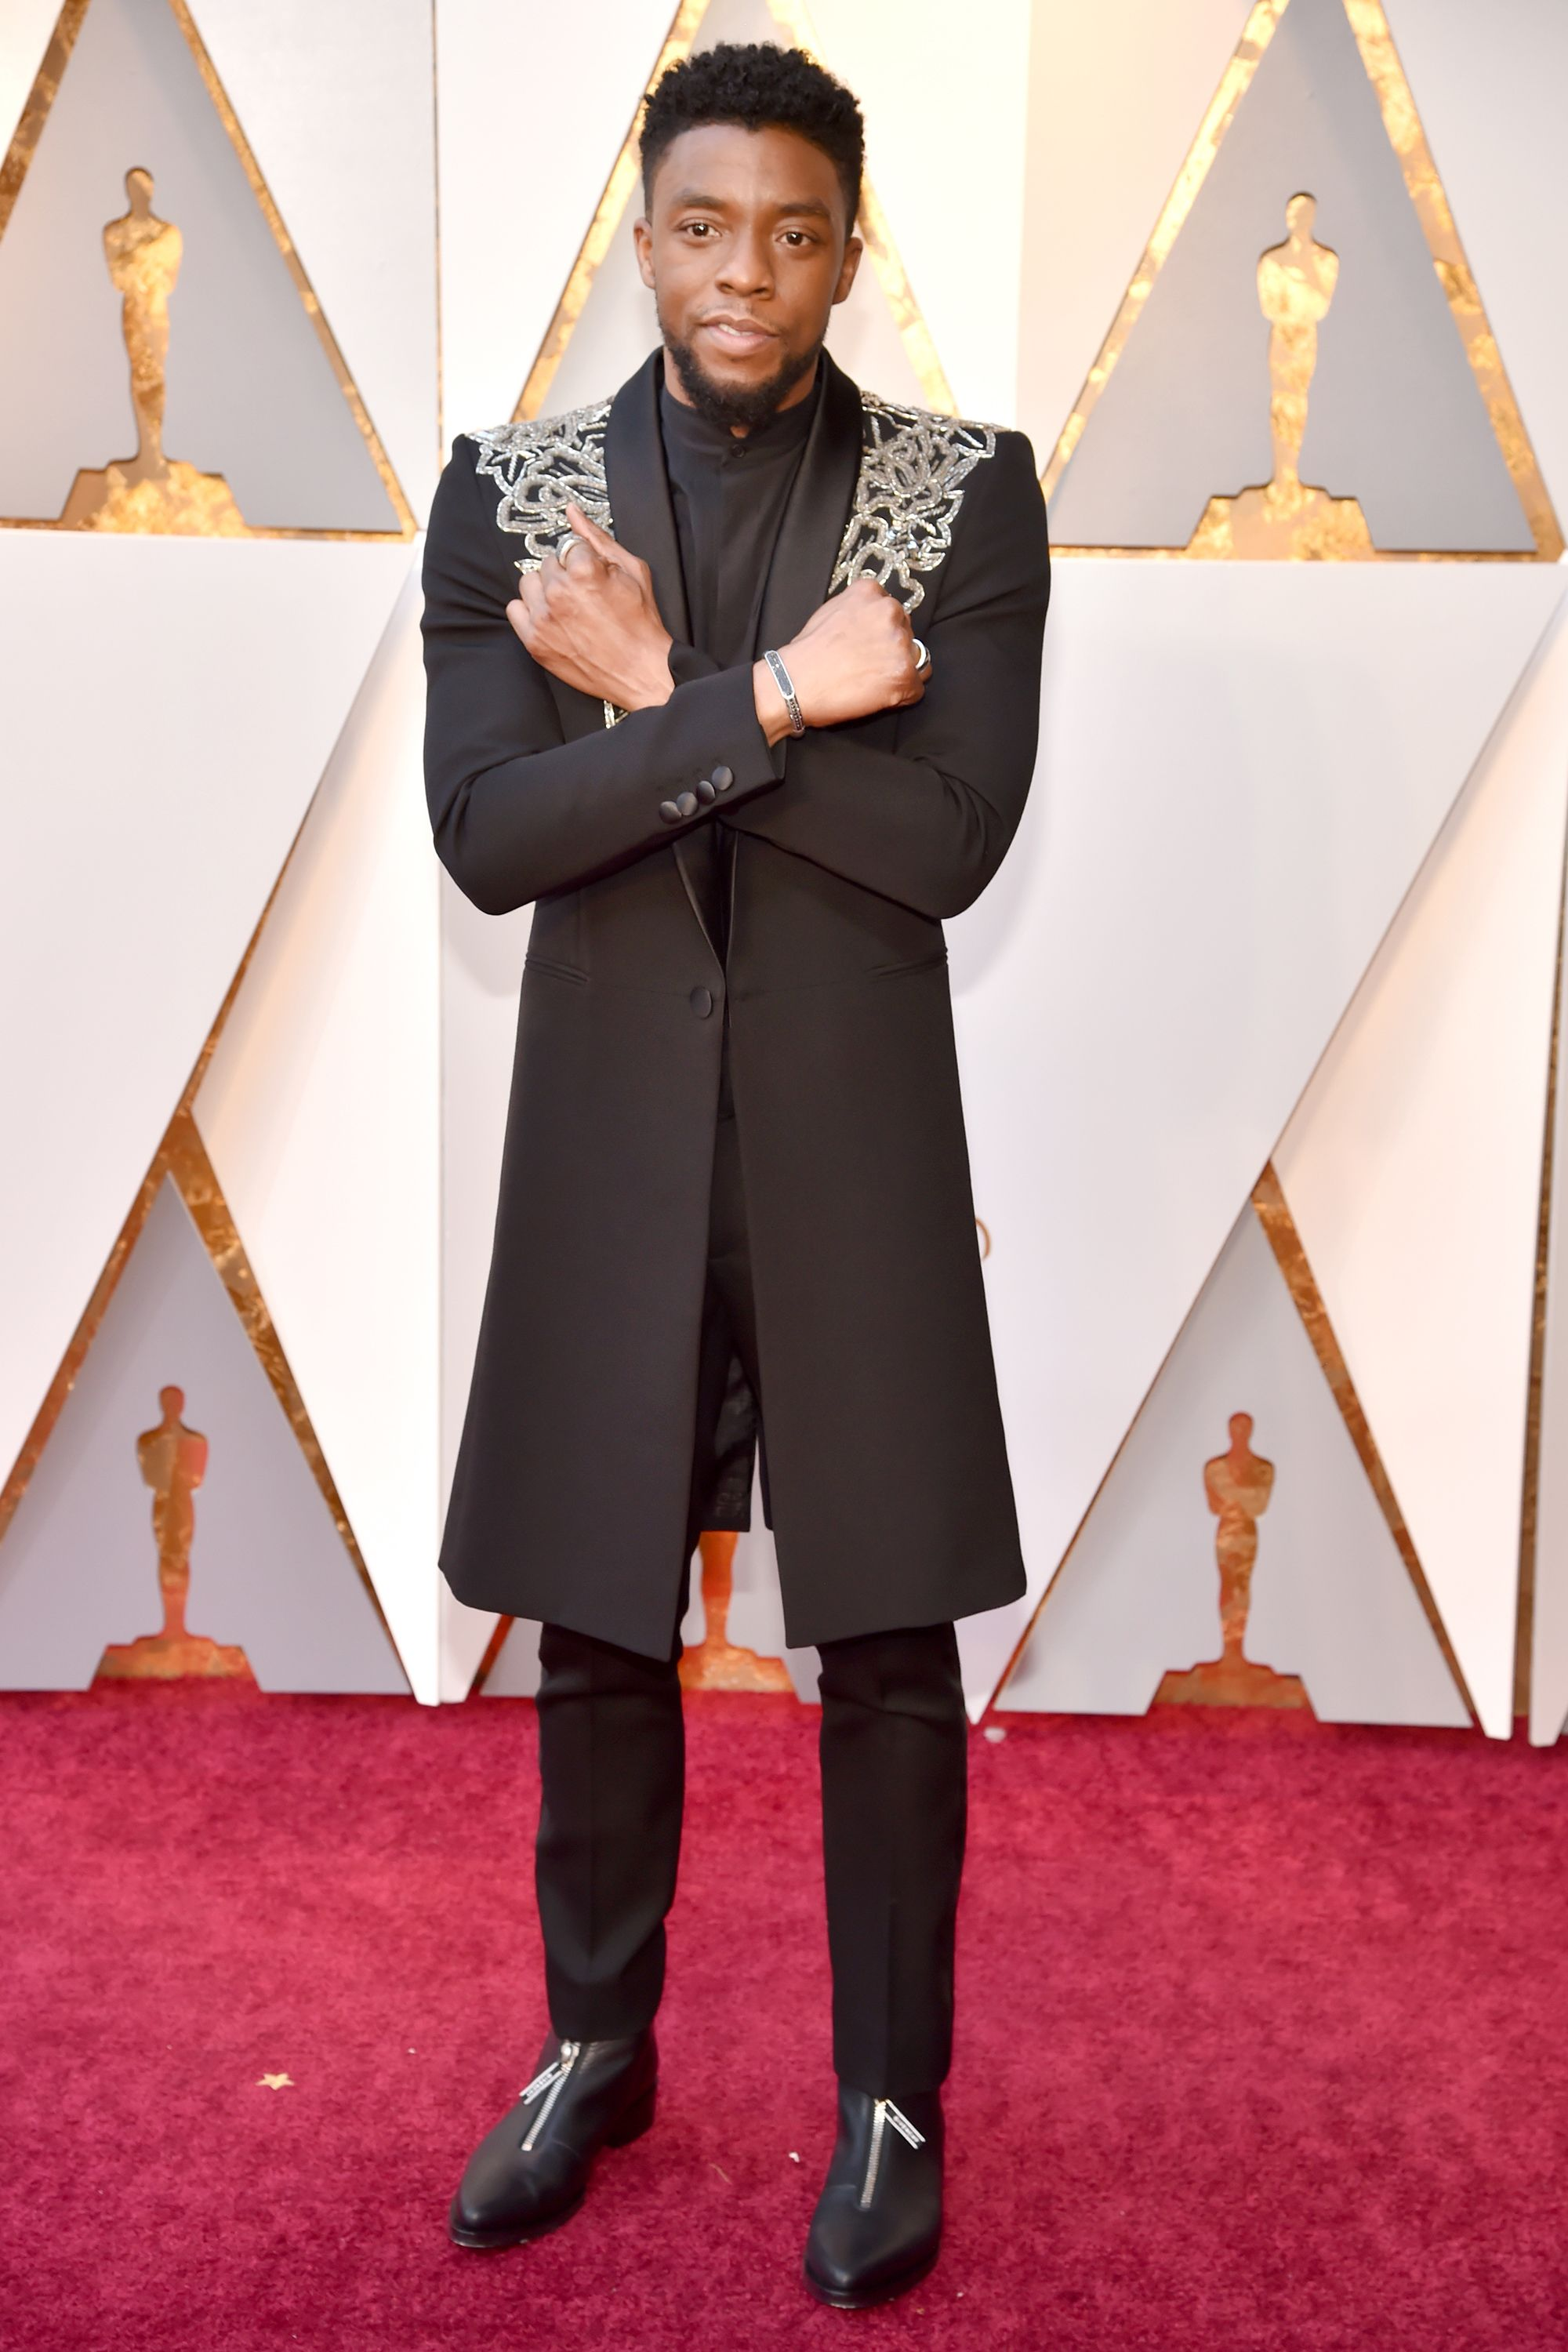 Image result for the oscars black panther